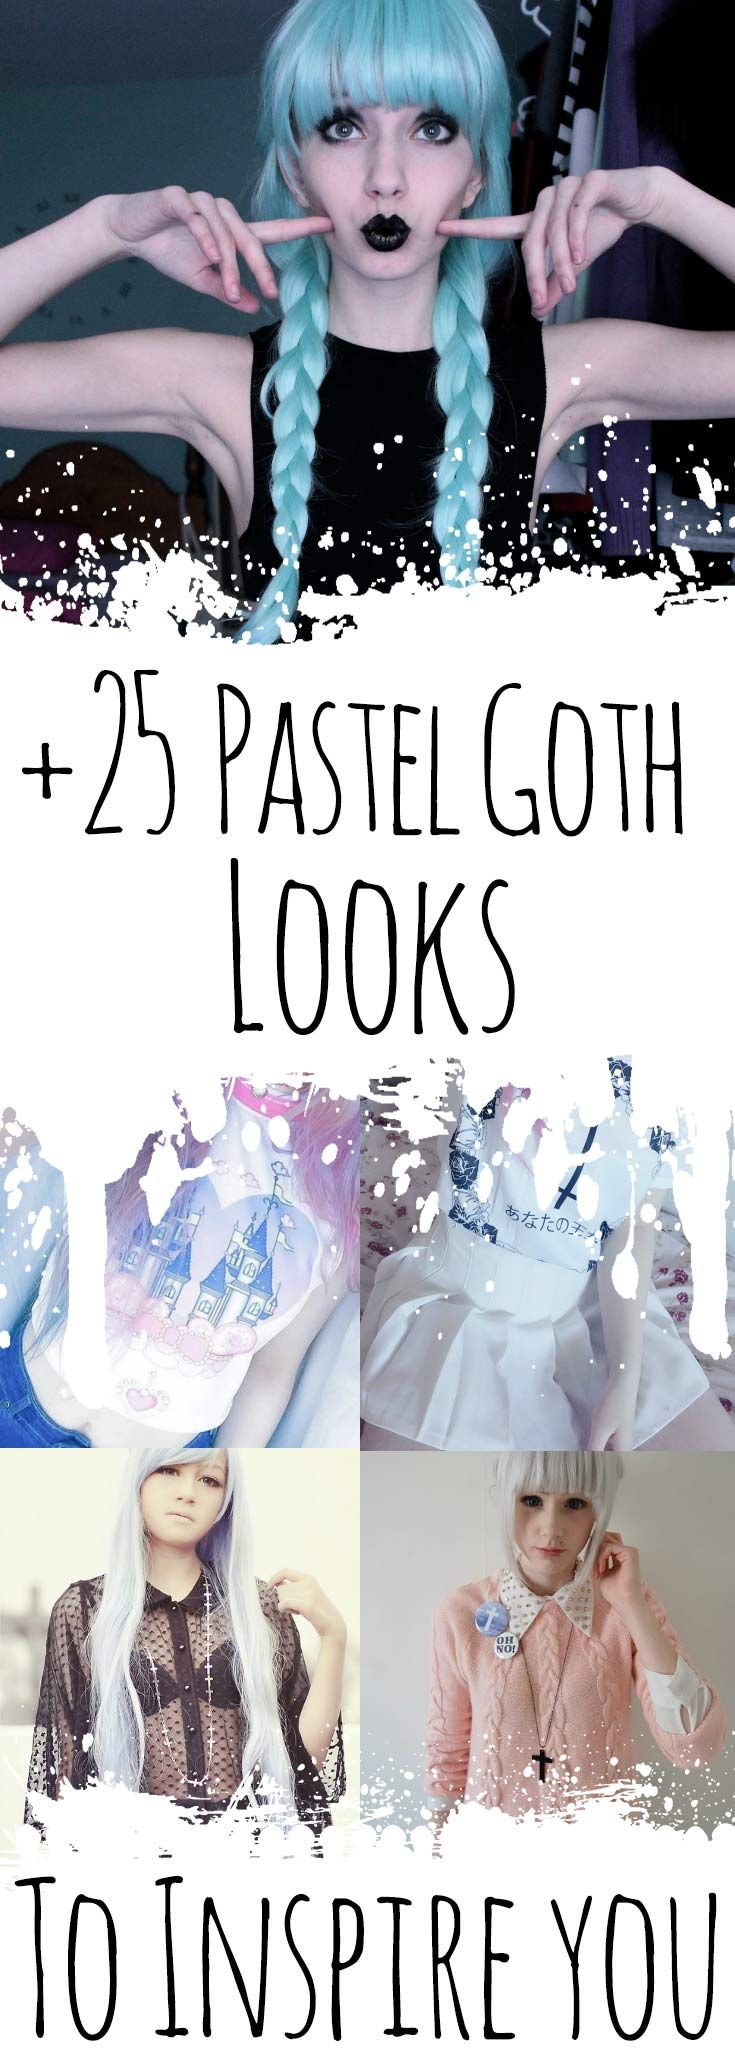 +20 Pastel Goth Looks to inspire you: shirts with cross patterns, spiked chokers, black dresses and much more! Read the article right here: http://ninjacosmico.com/25-pastel-goth-looks-inspire/